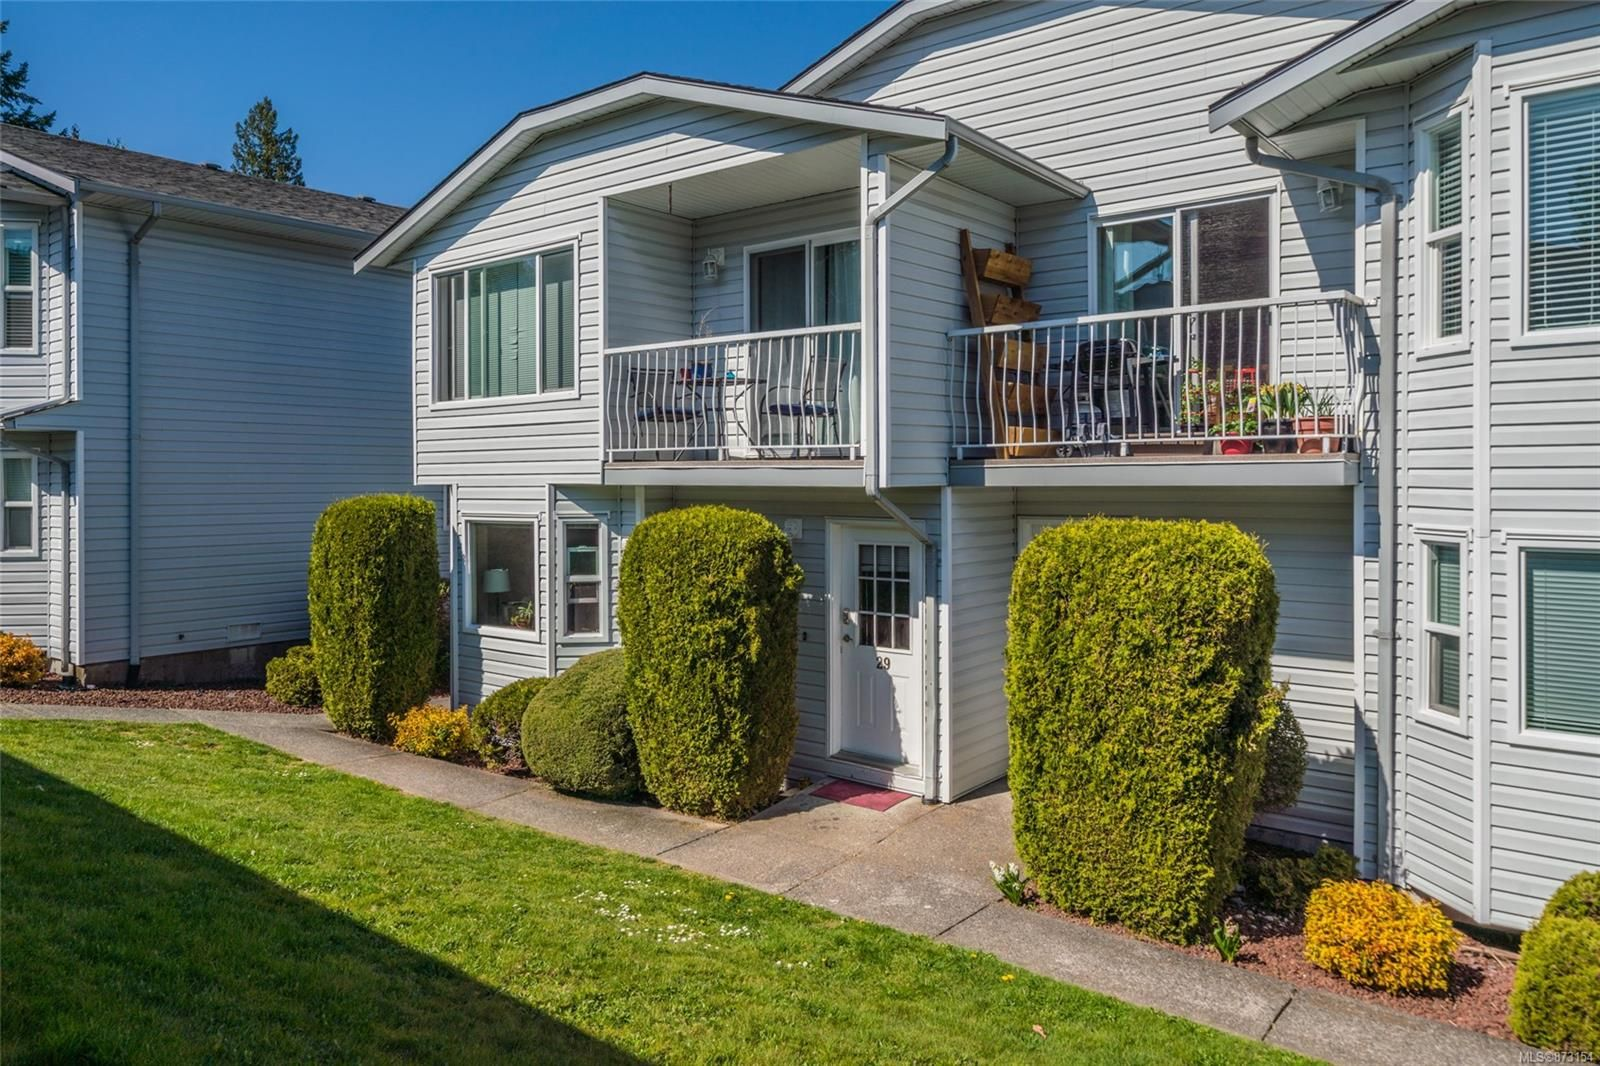 Main Photo: 29 260 Harwell Rd in : Na University District Condo for sale (Nanaimo)  : MLS®# 873154